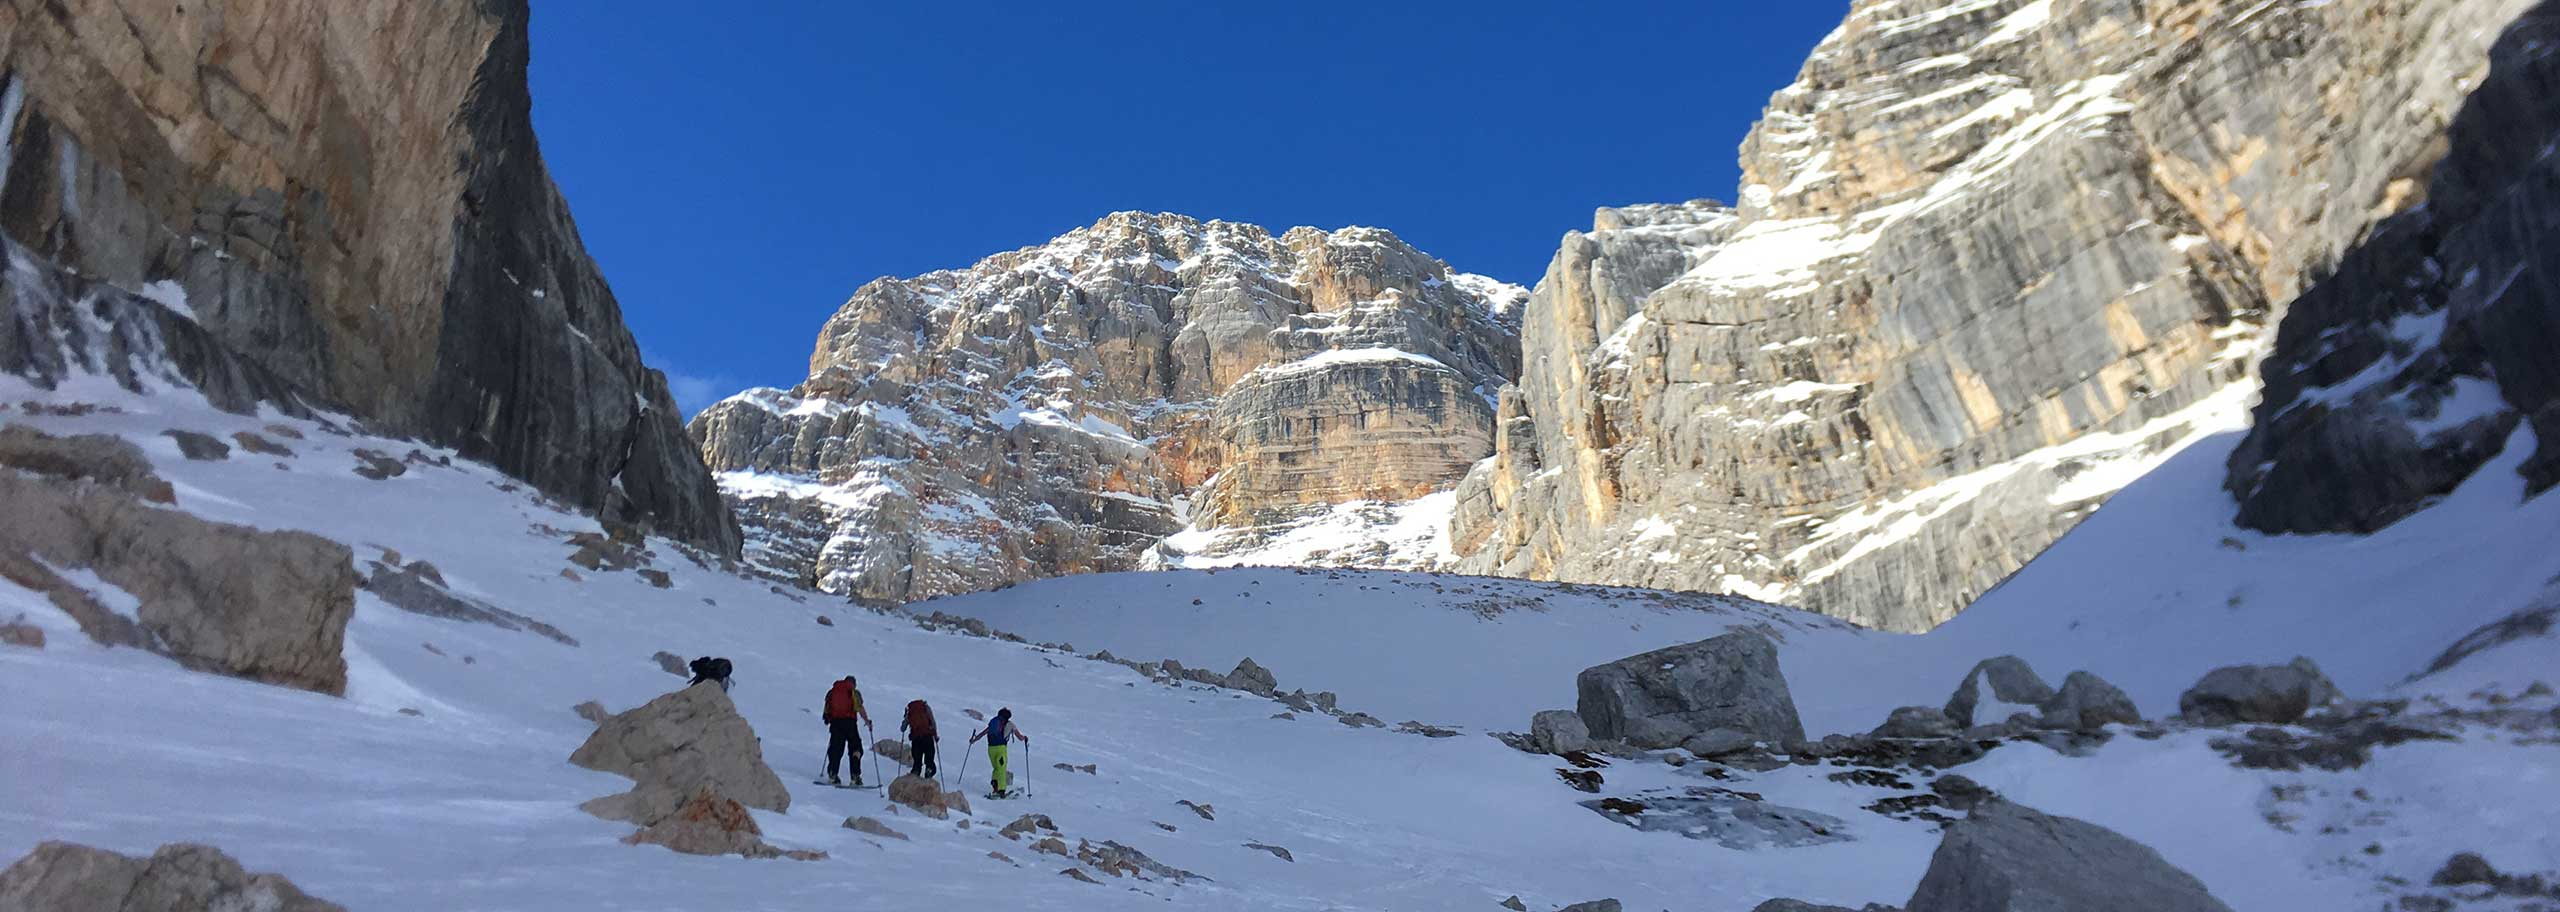 Ski Mountaineering with a Mountain Guide in Alta Badia